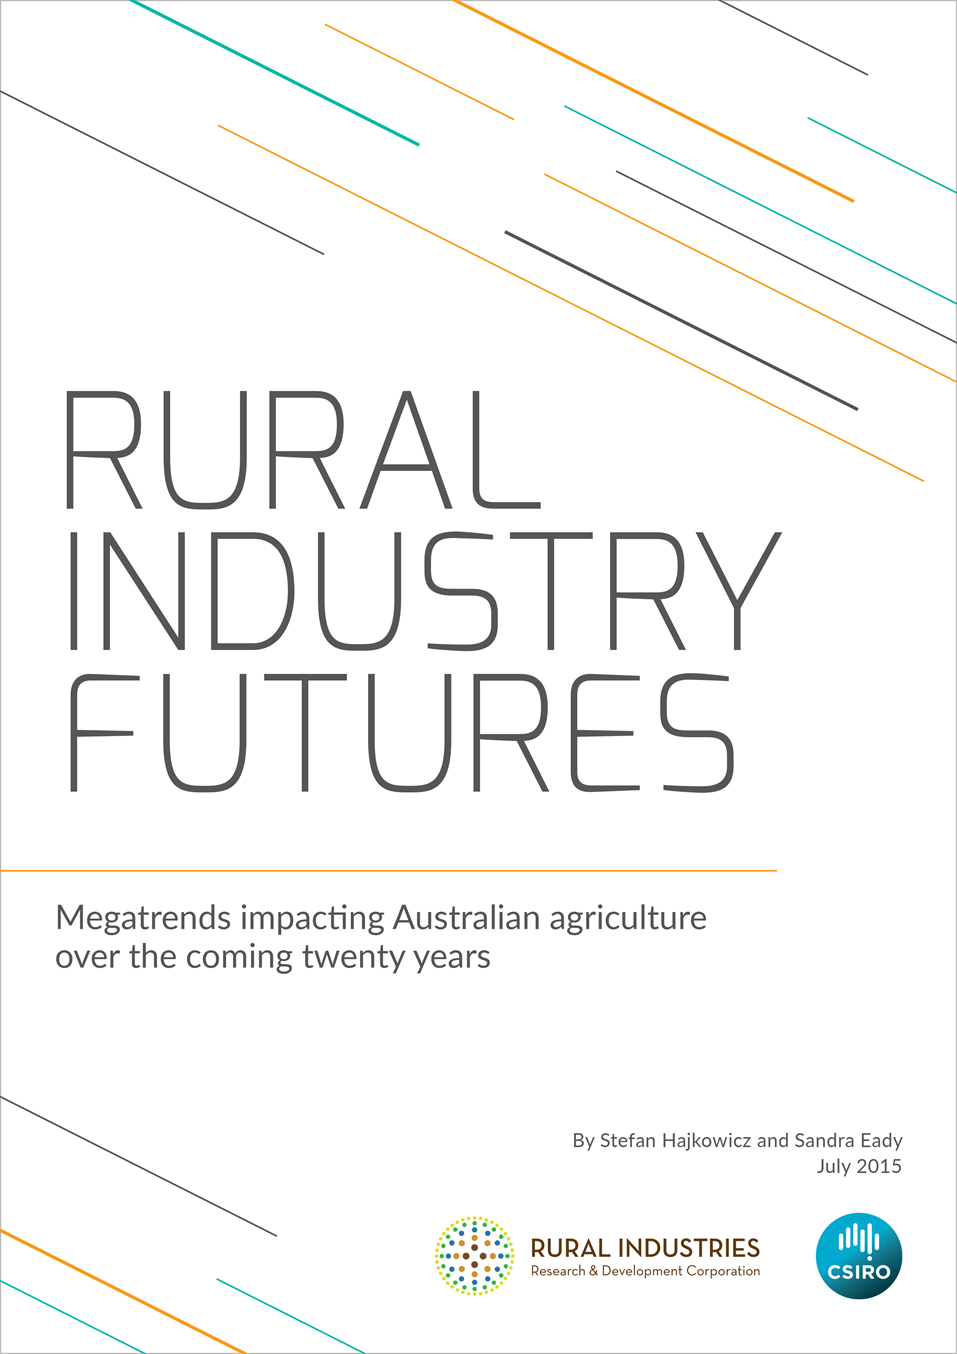 Cover Image of Rural Industry Futures report